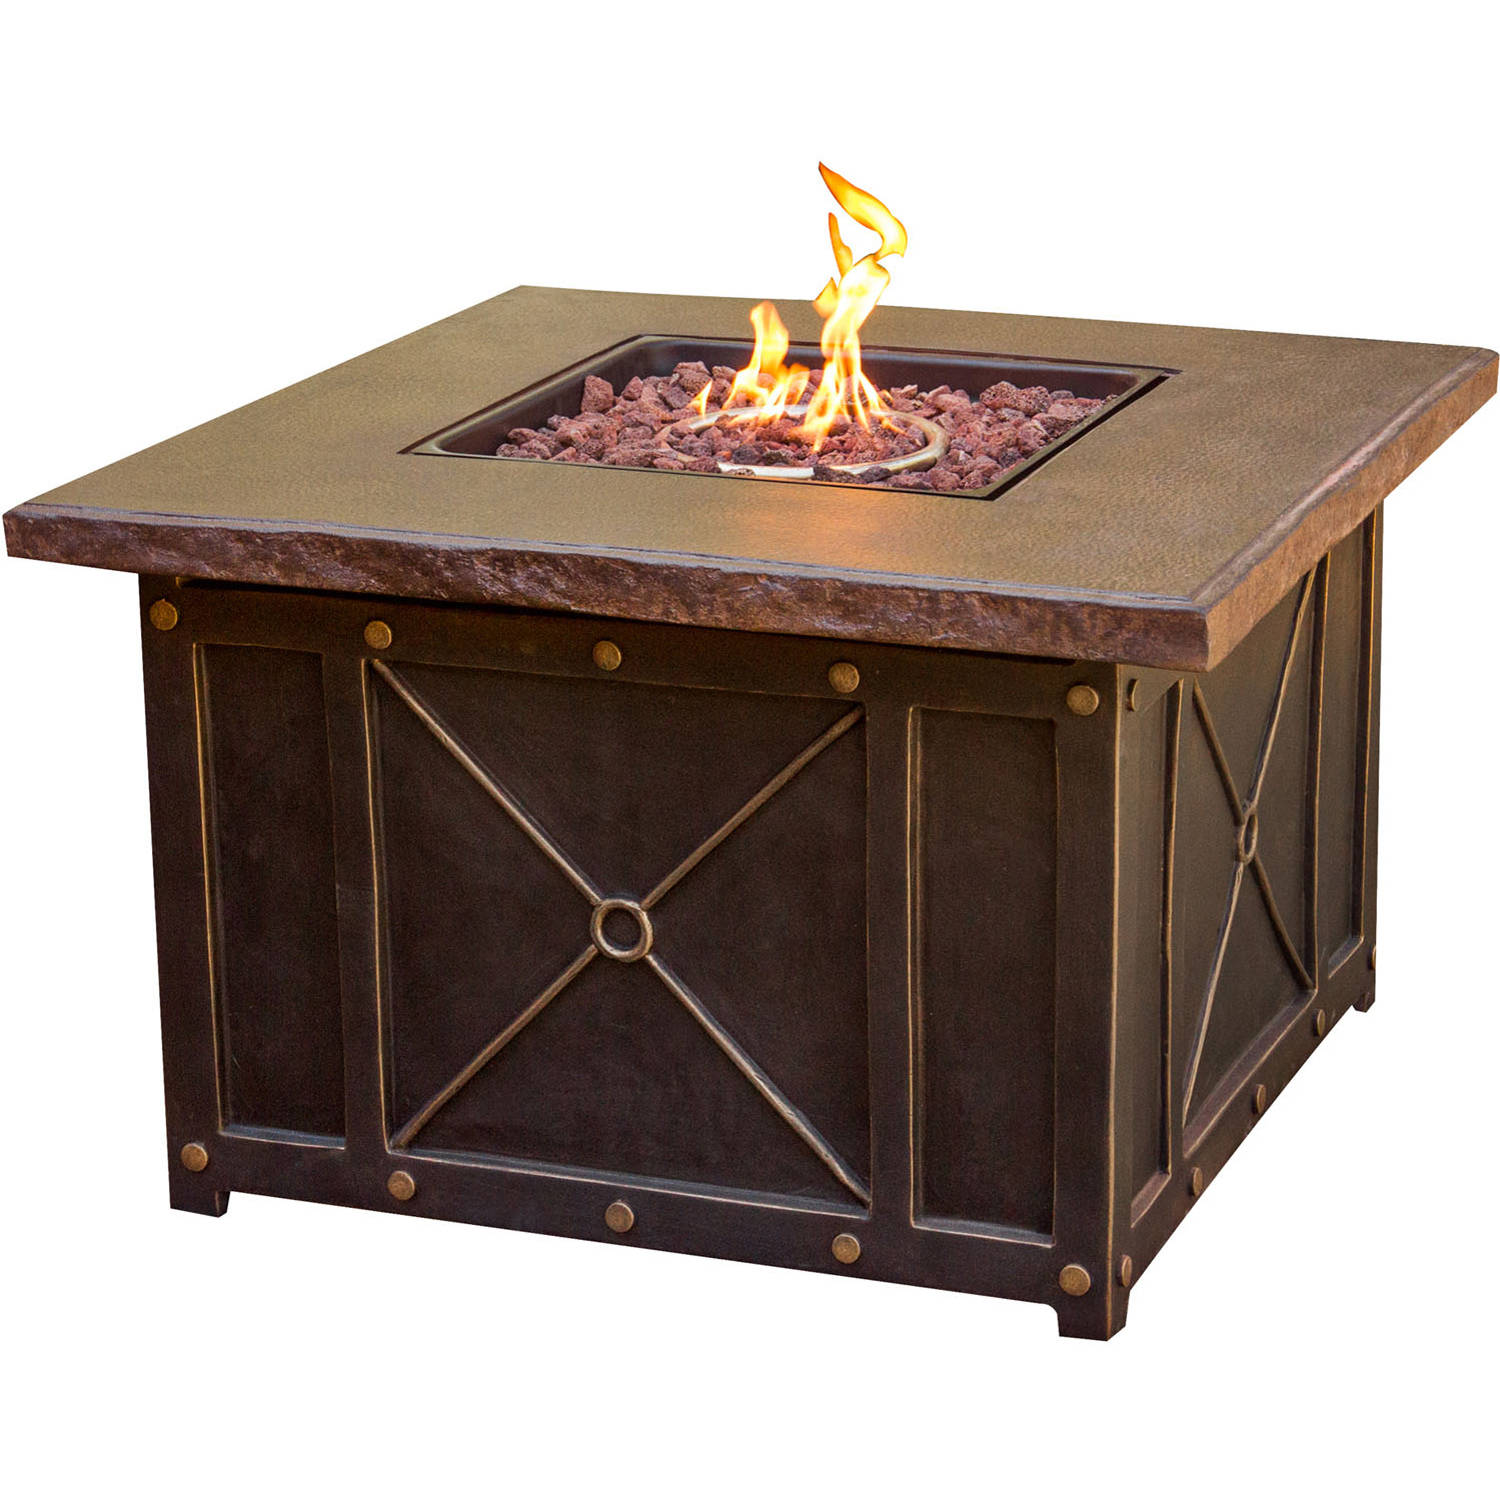 "Cambridge 40"" Square Gas Fire Pit with Durastone Top"